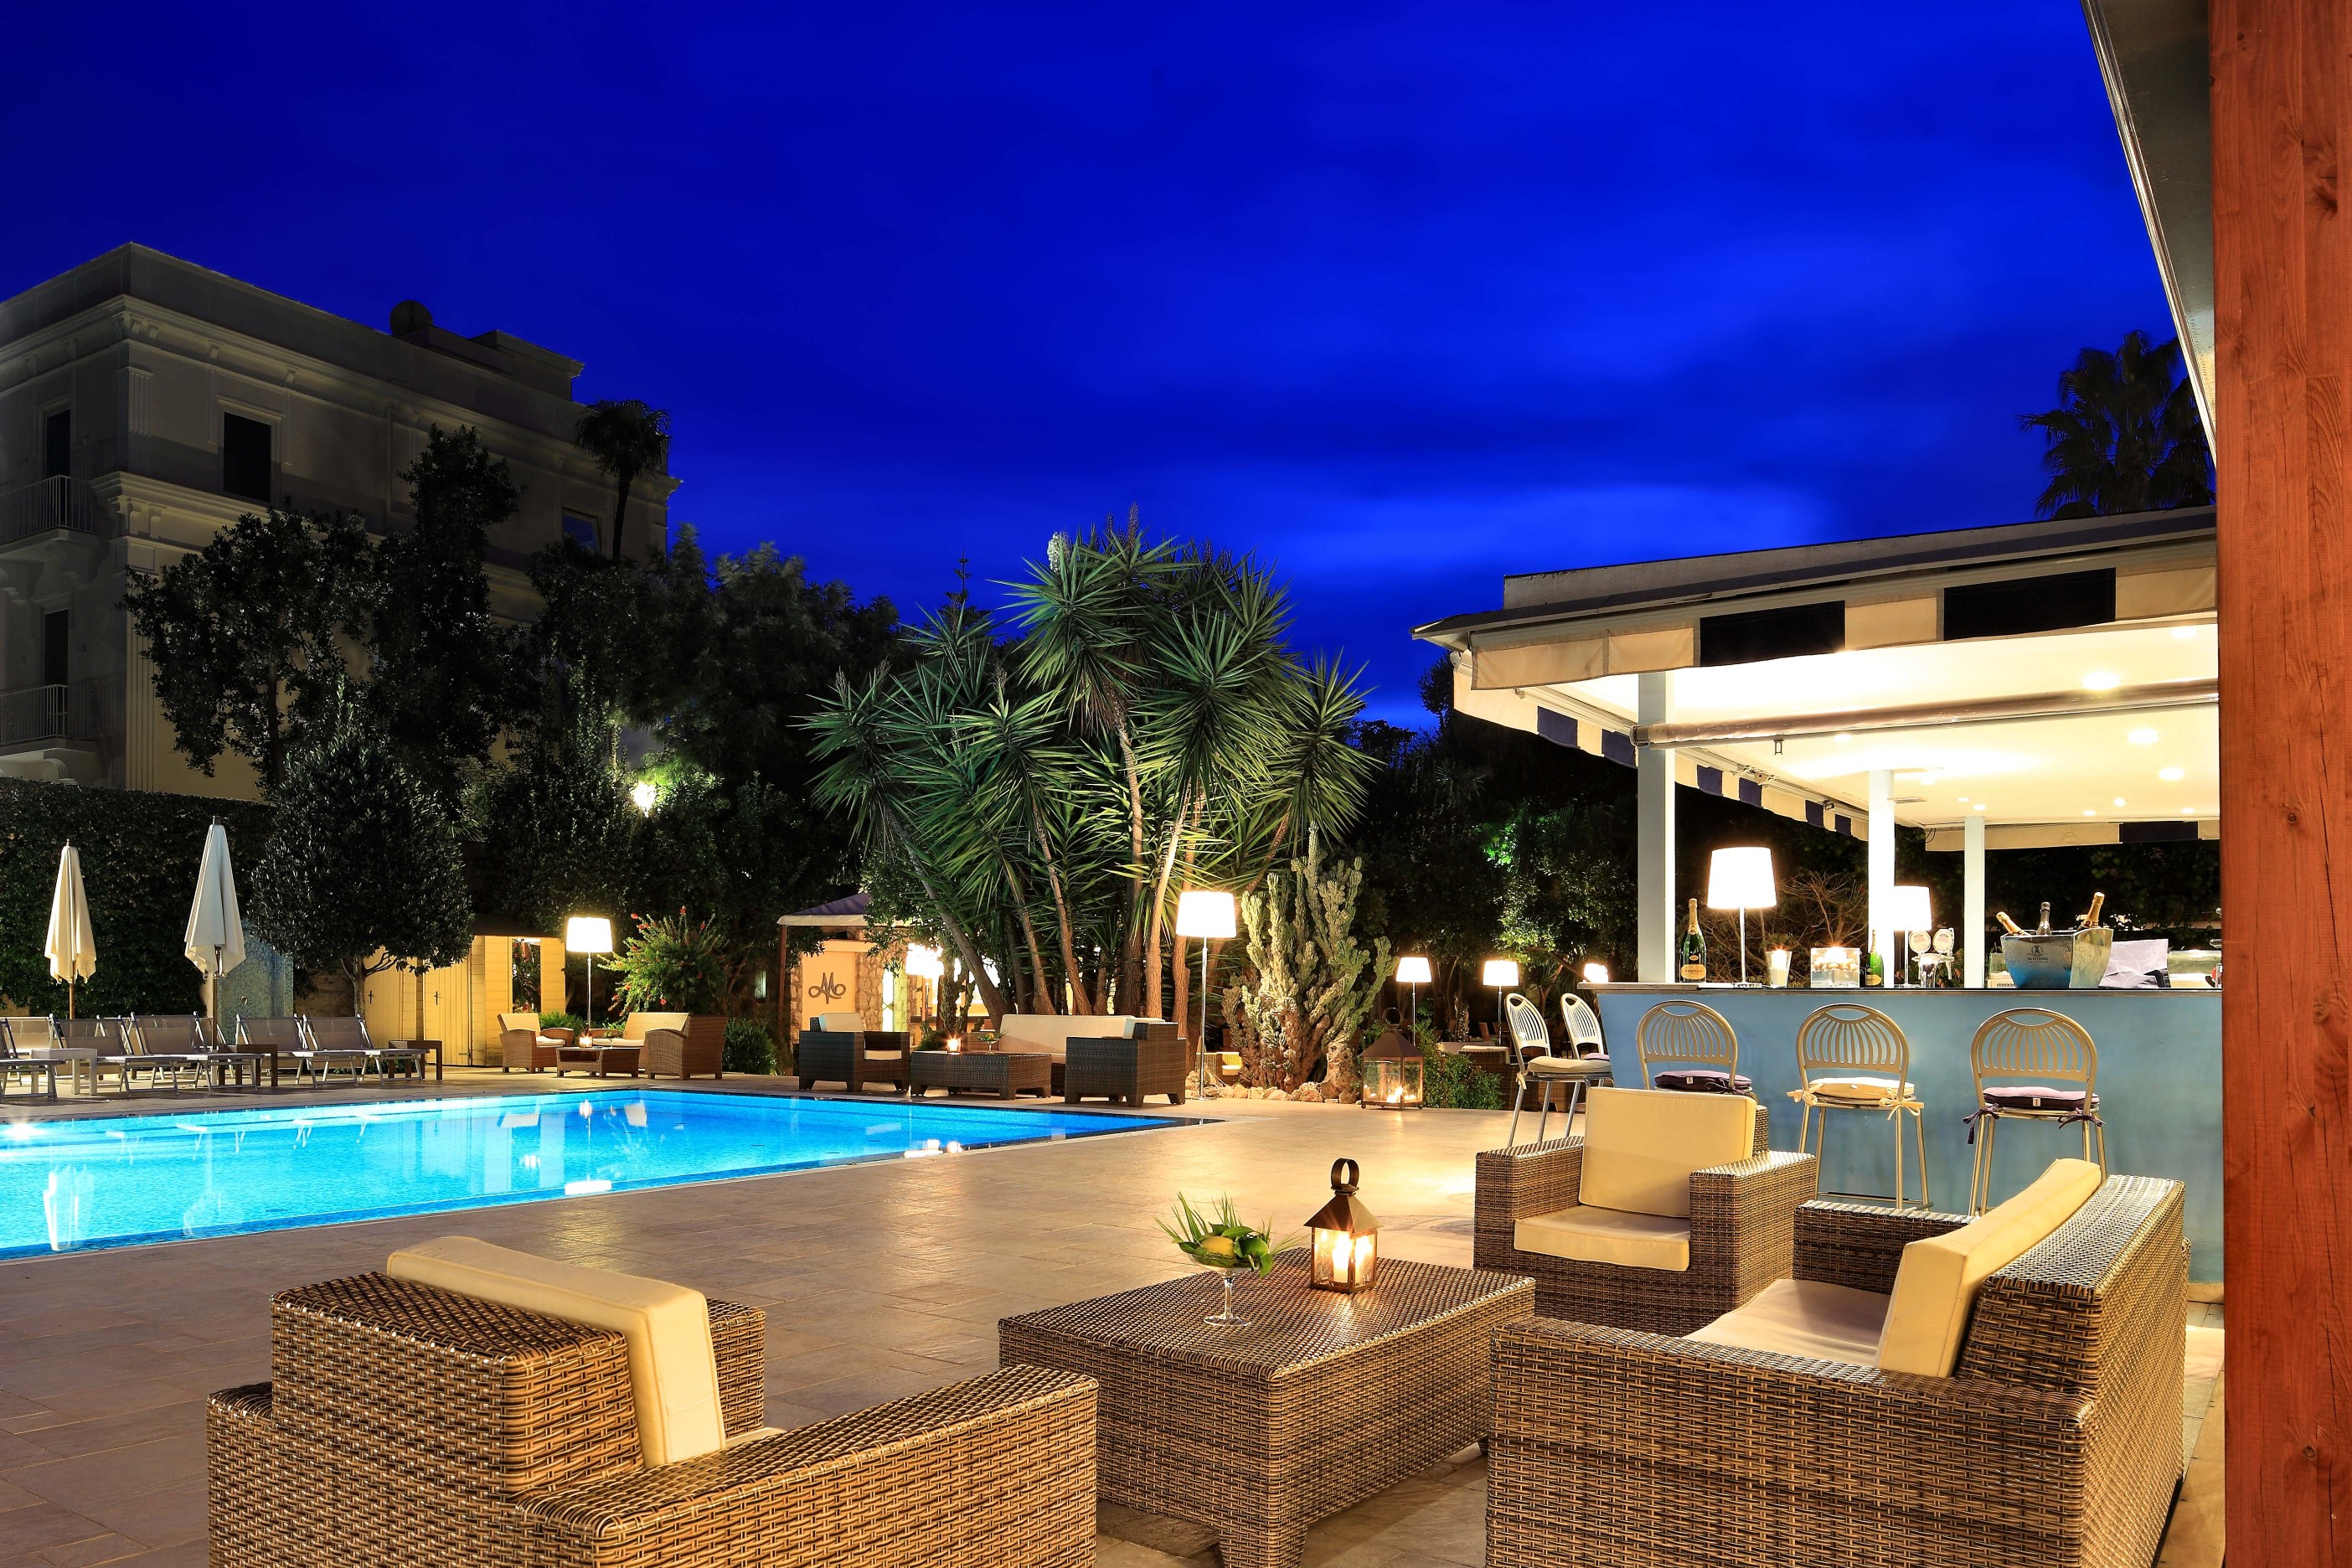 Sorrento hotels cheap hotels - Hotel in sorrento italy with swimming pool ...